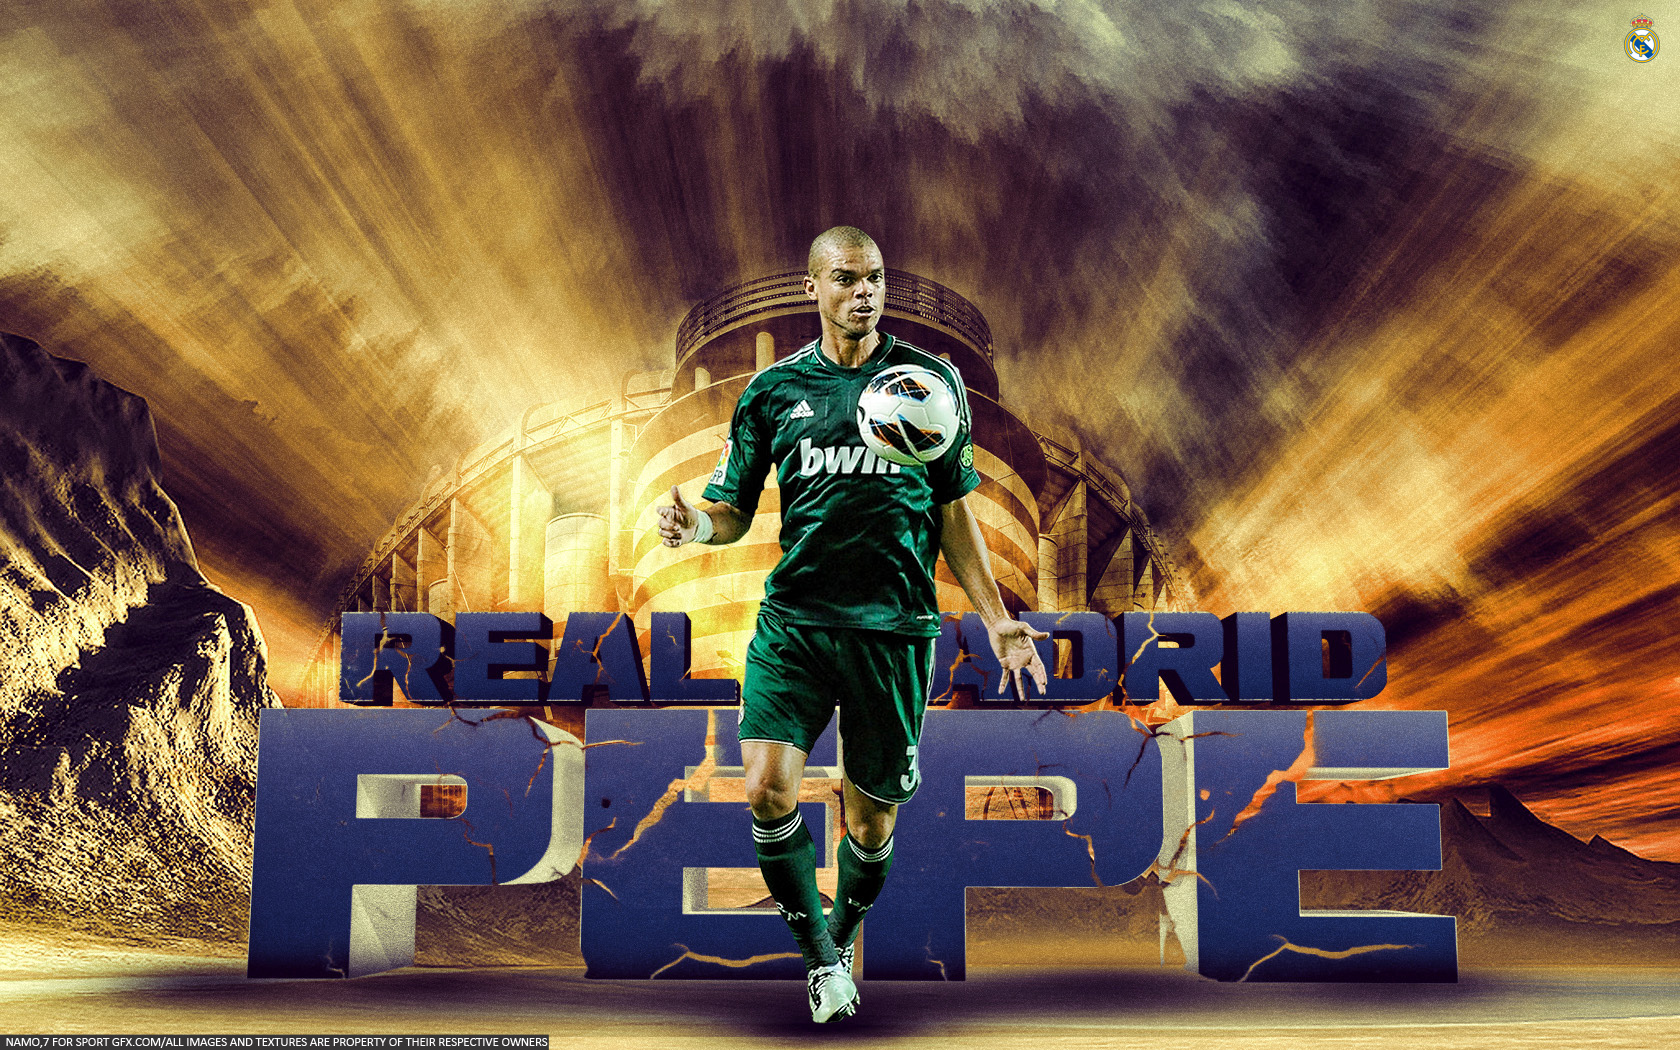 wallpaper 2014 pepe desktop Desktop Backgrounds for HD 1680x1050